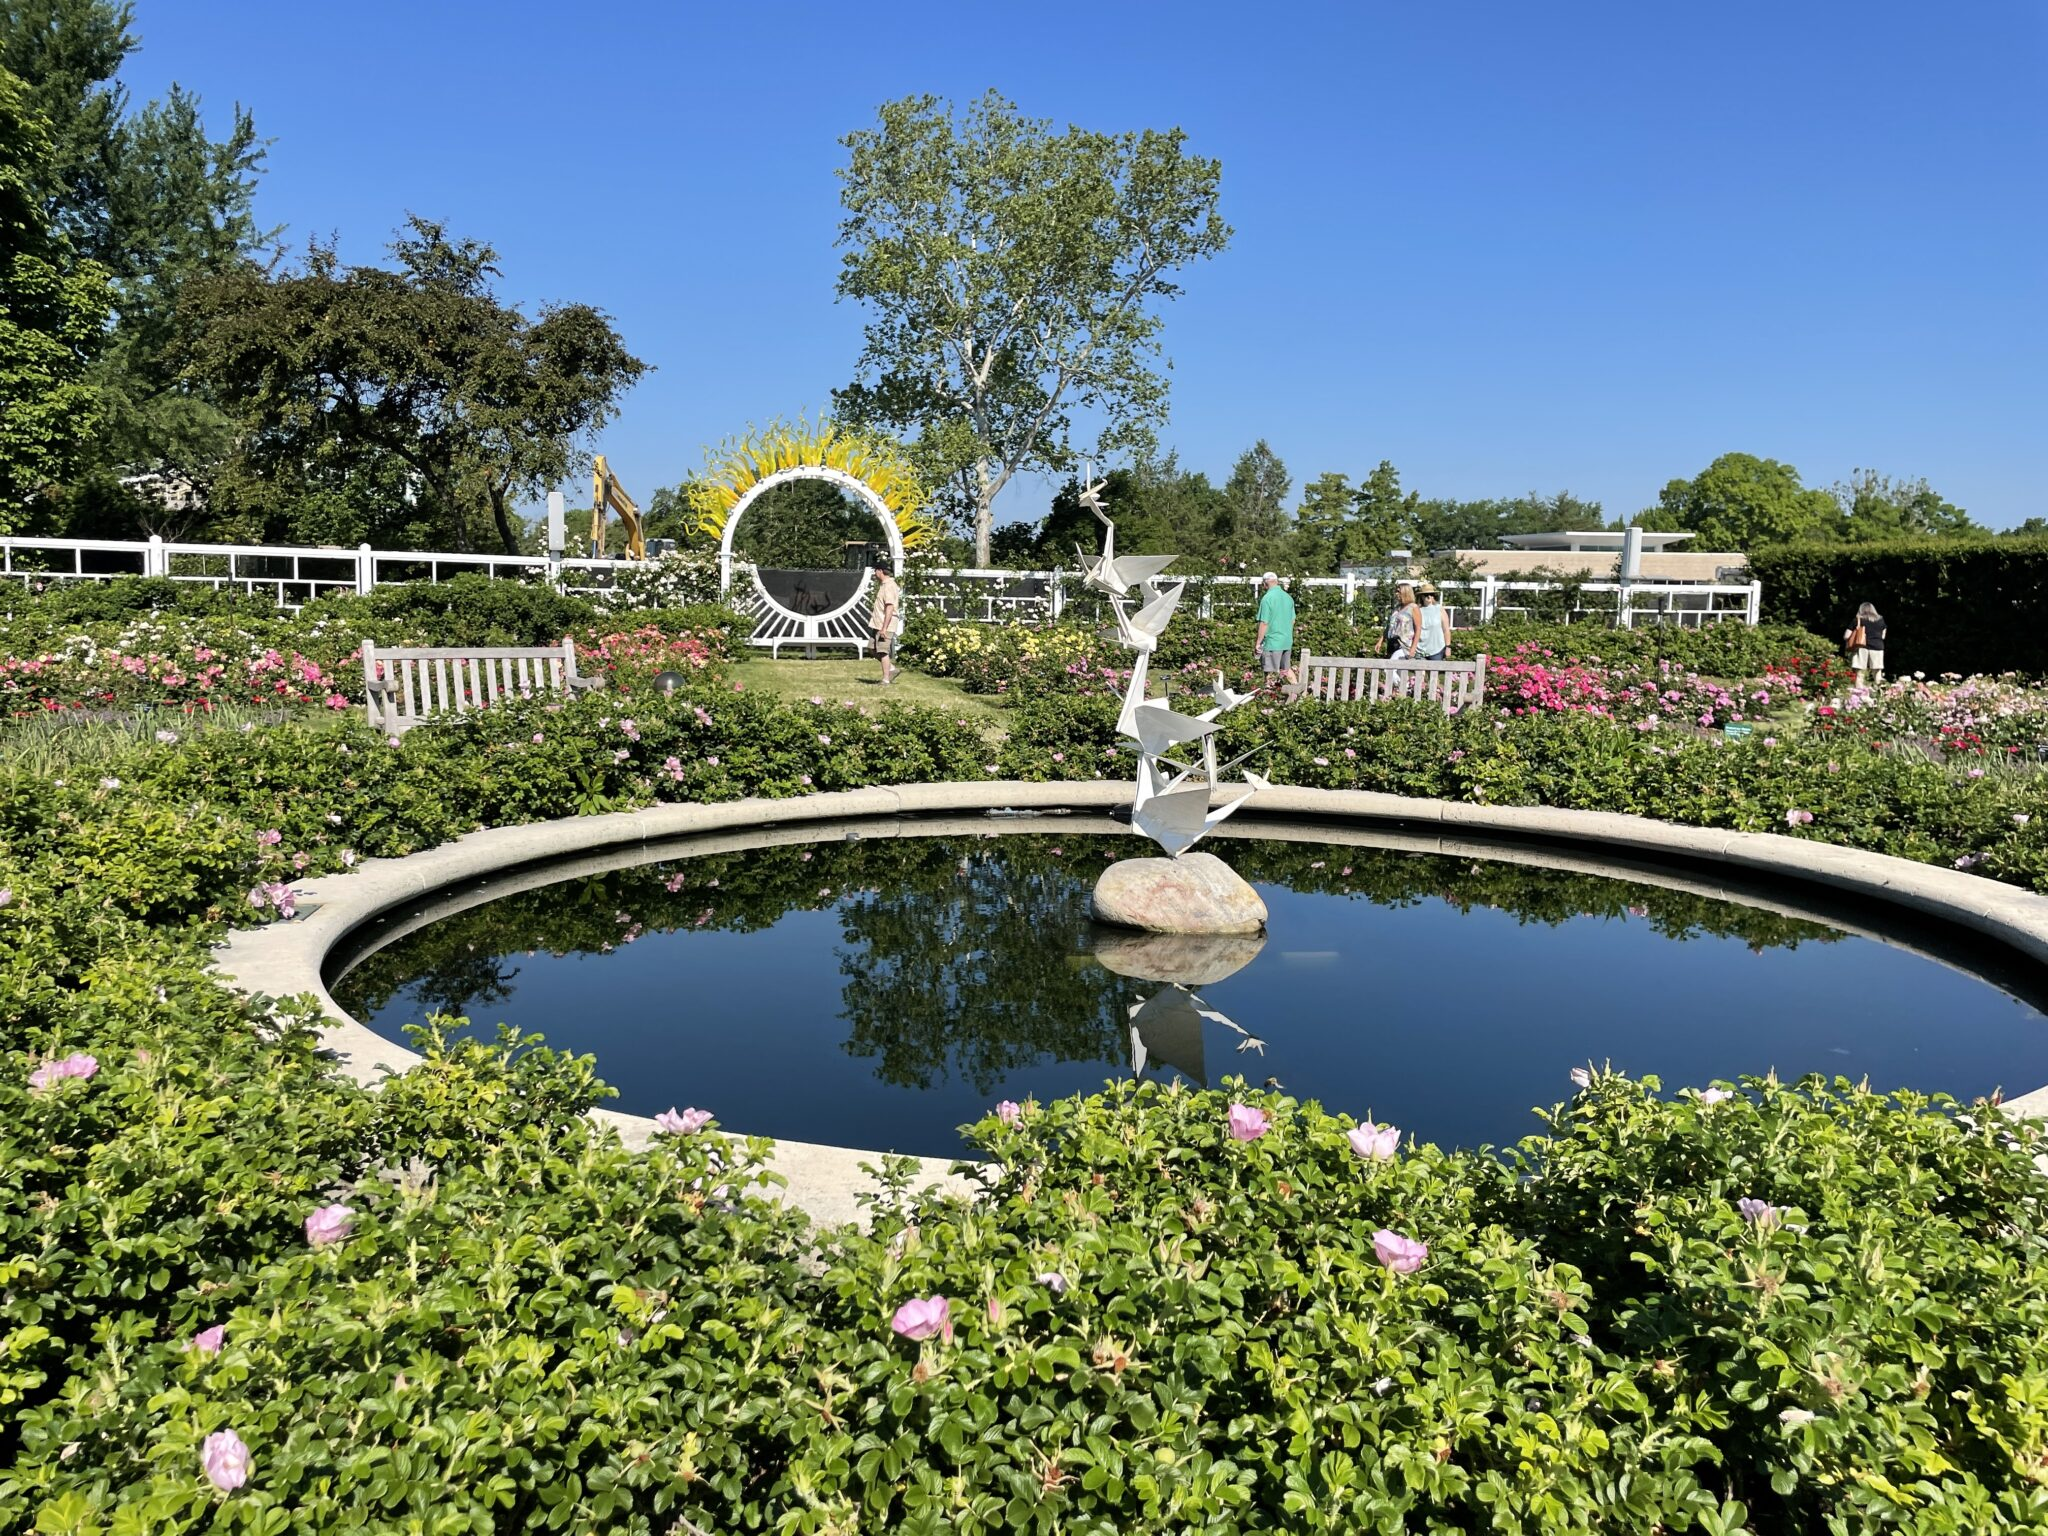 Traveling to St. Louis by popular Chicago travel blogger, Glass of Glam: image of a fountain in a flower garden.